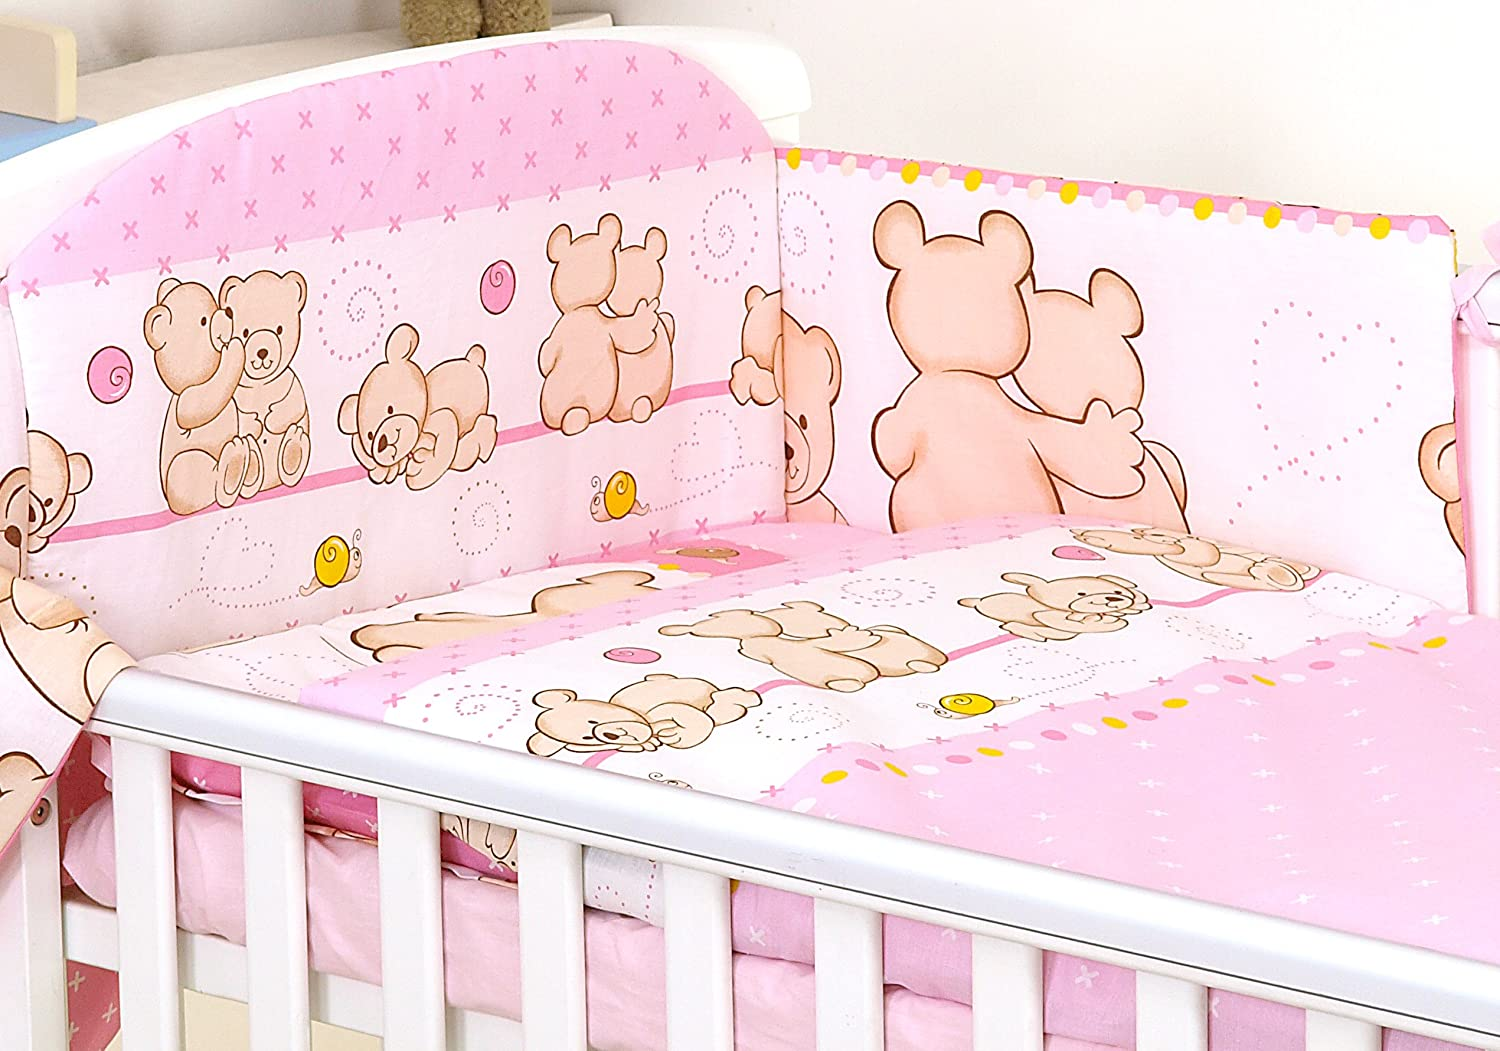 3 pc set PINK FRIENDS TEDDY BEAR PATTERN inc DUVET COVER-PILLOW CASE-BUMPER - FOR COT 120X60 OR COT BED 140X70 (COT 120X60) SCANDI BEDDING LIMITED